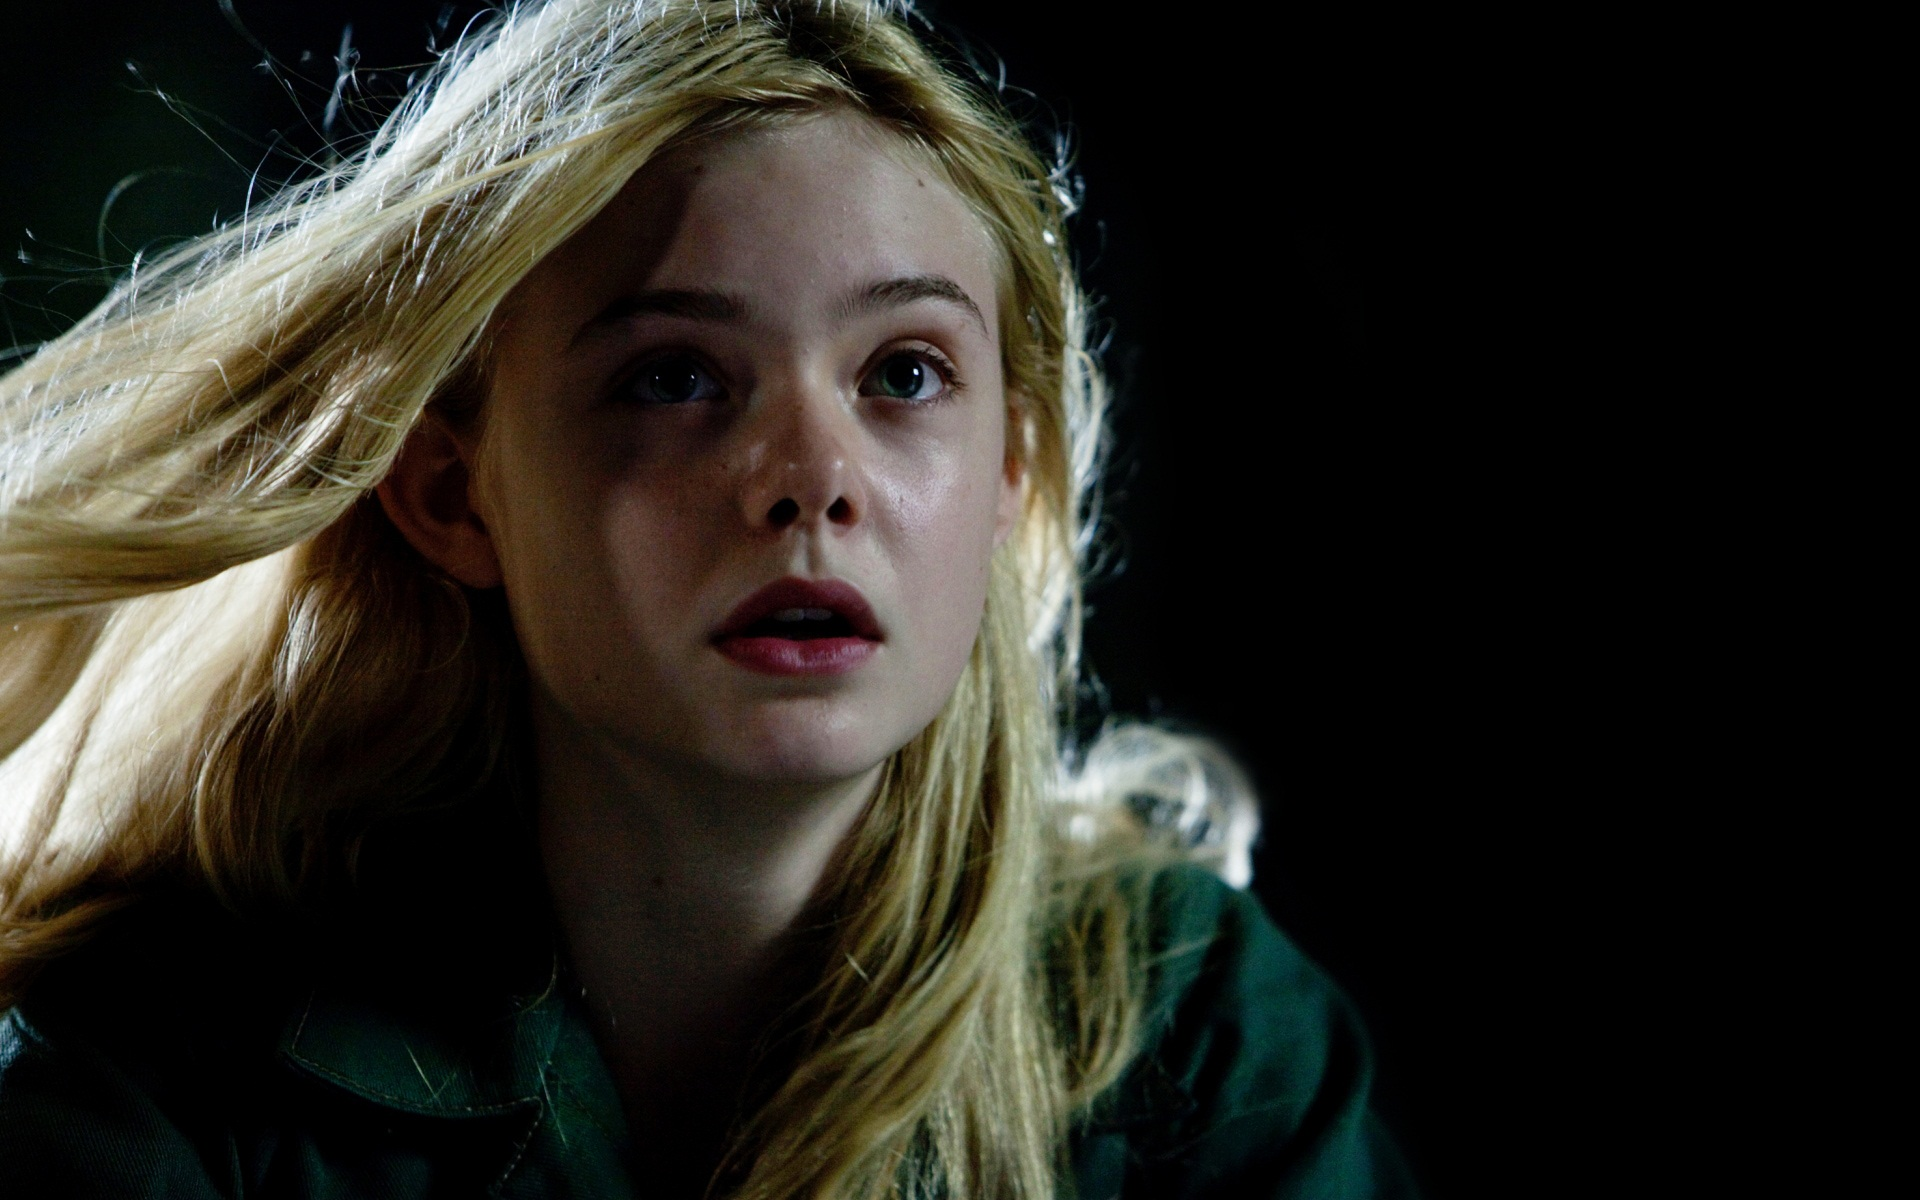 Elle Fanning in Super 8 541.89 Kb